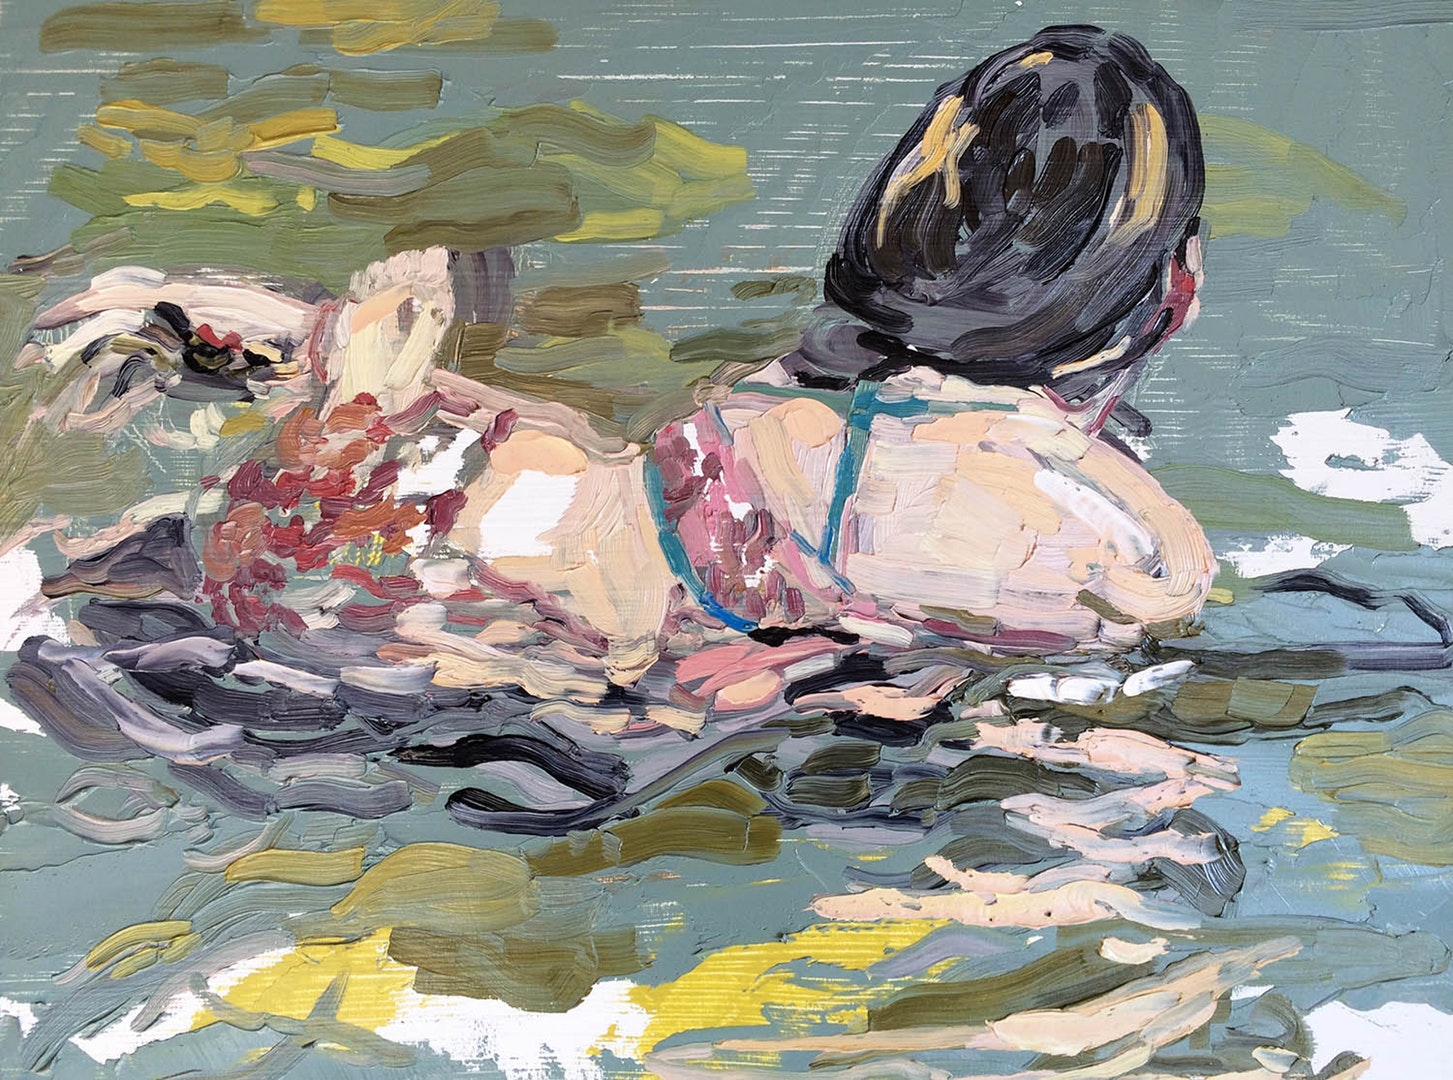 'Sea Water', Emma Copley, Oil on wood panel, 30 x 40 cm